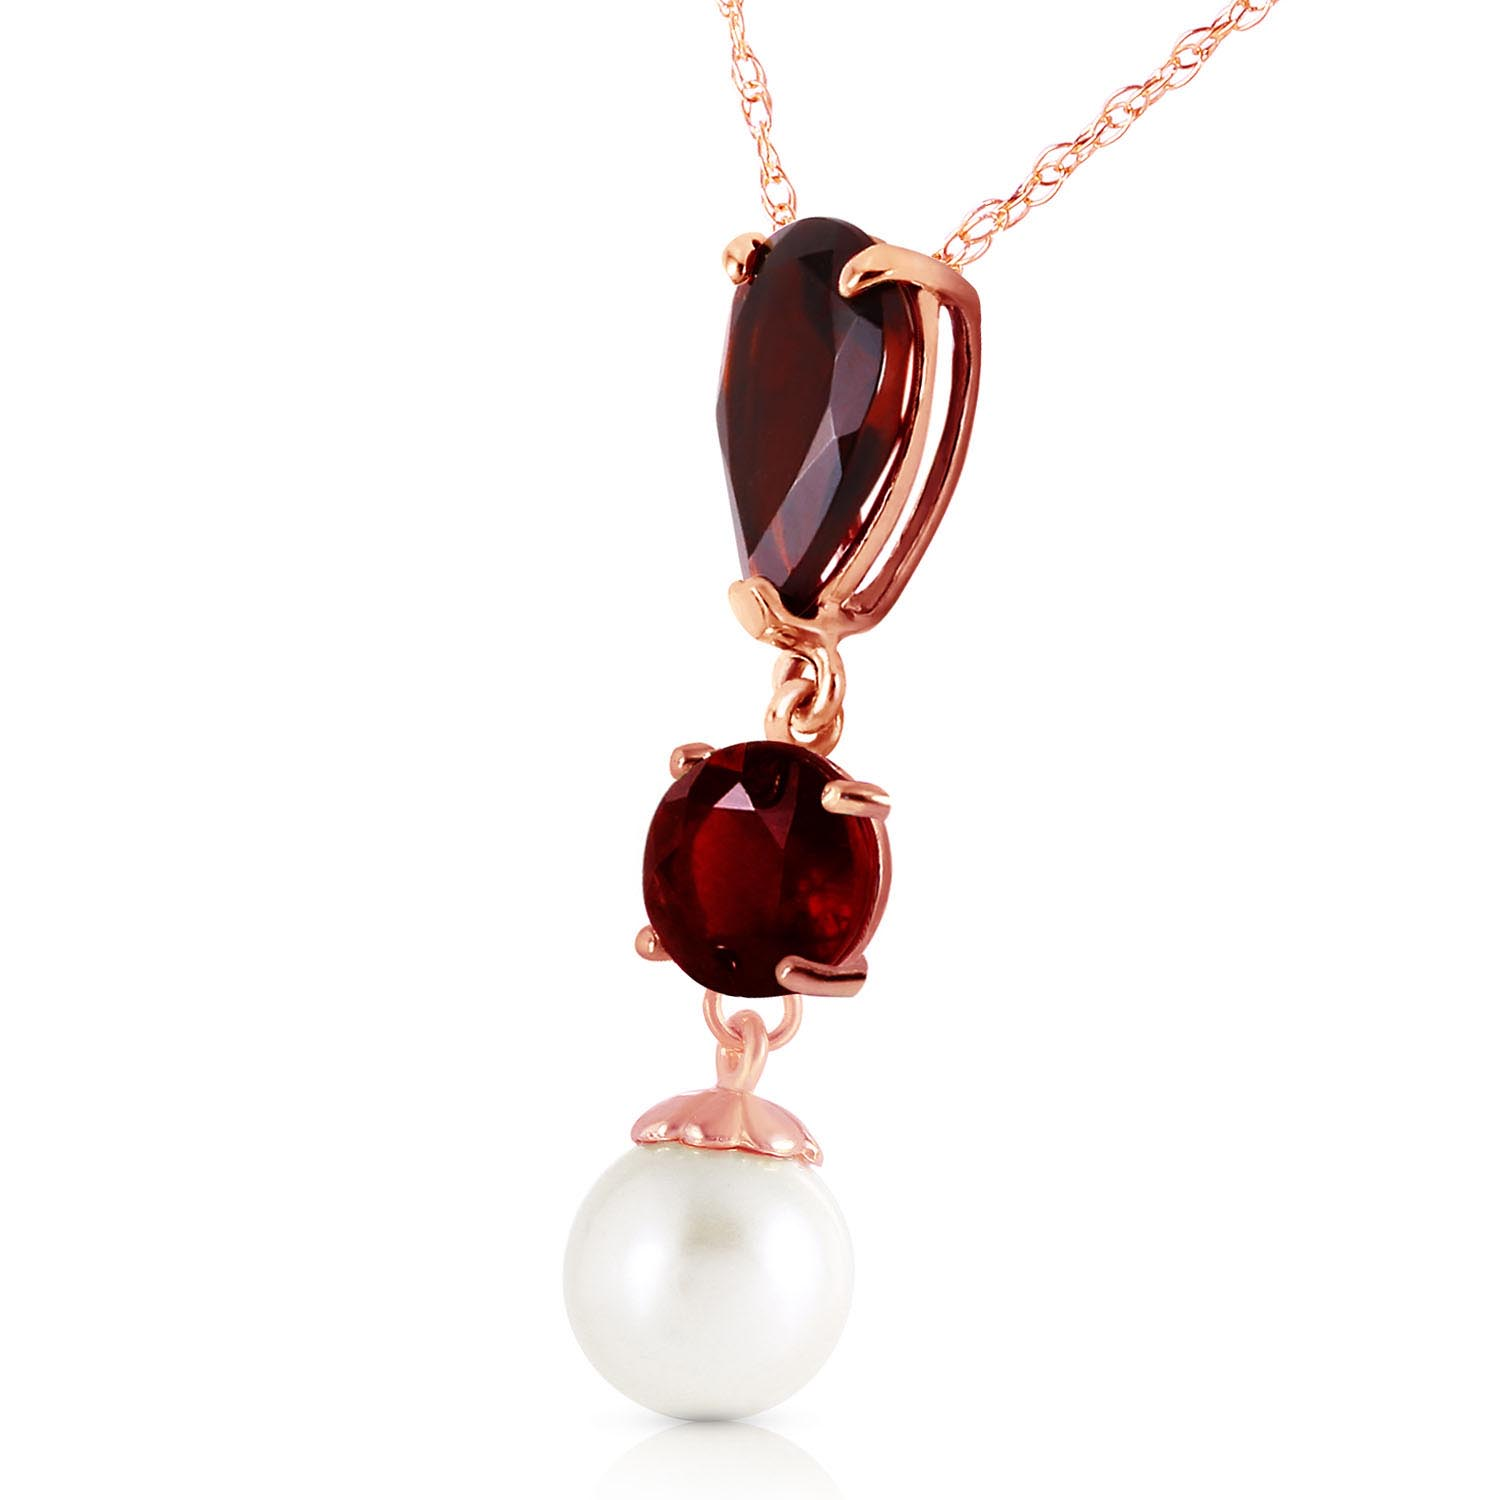 Garnet and Pearl Hourglass Pendant Necklace 5.25ctw in 9ct Rose Gold